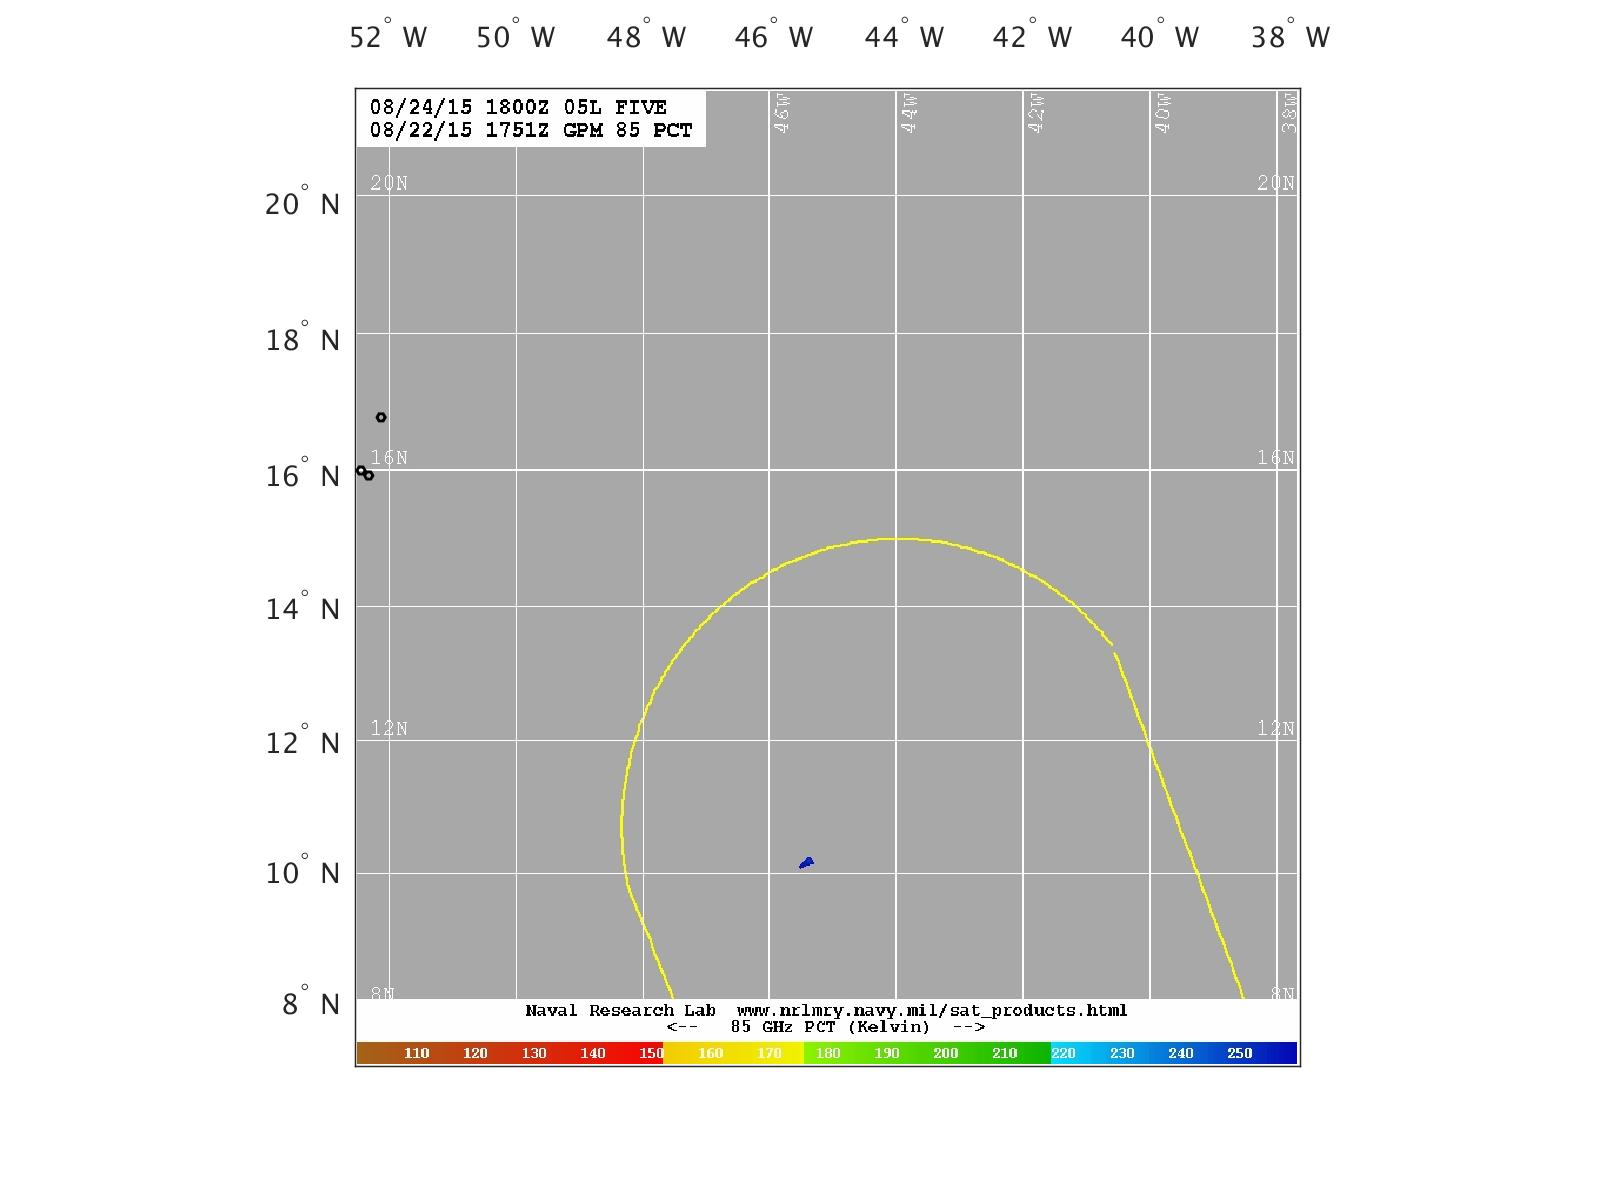 GMI 89 GHz PCT Satellite Overlay